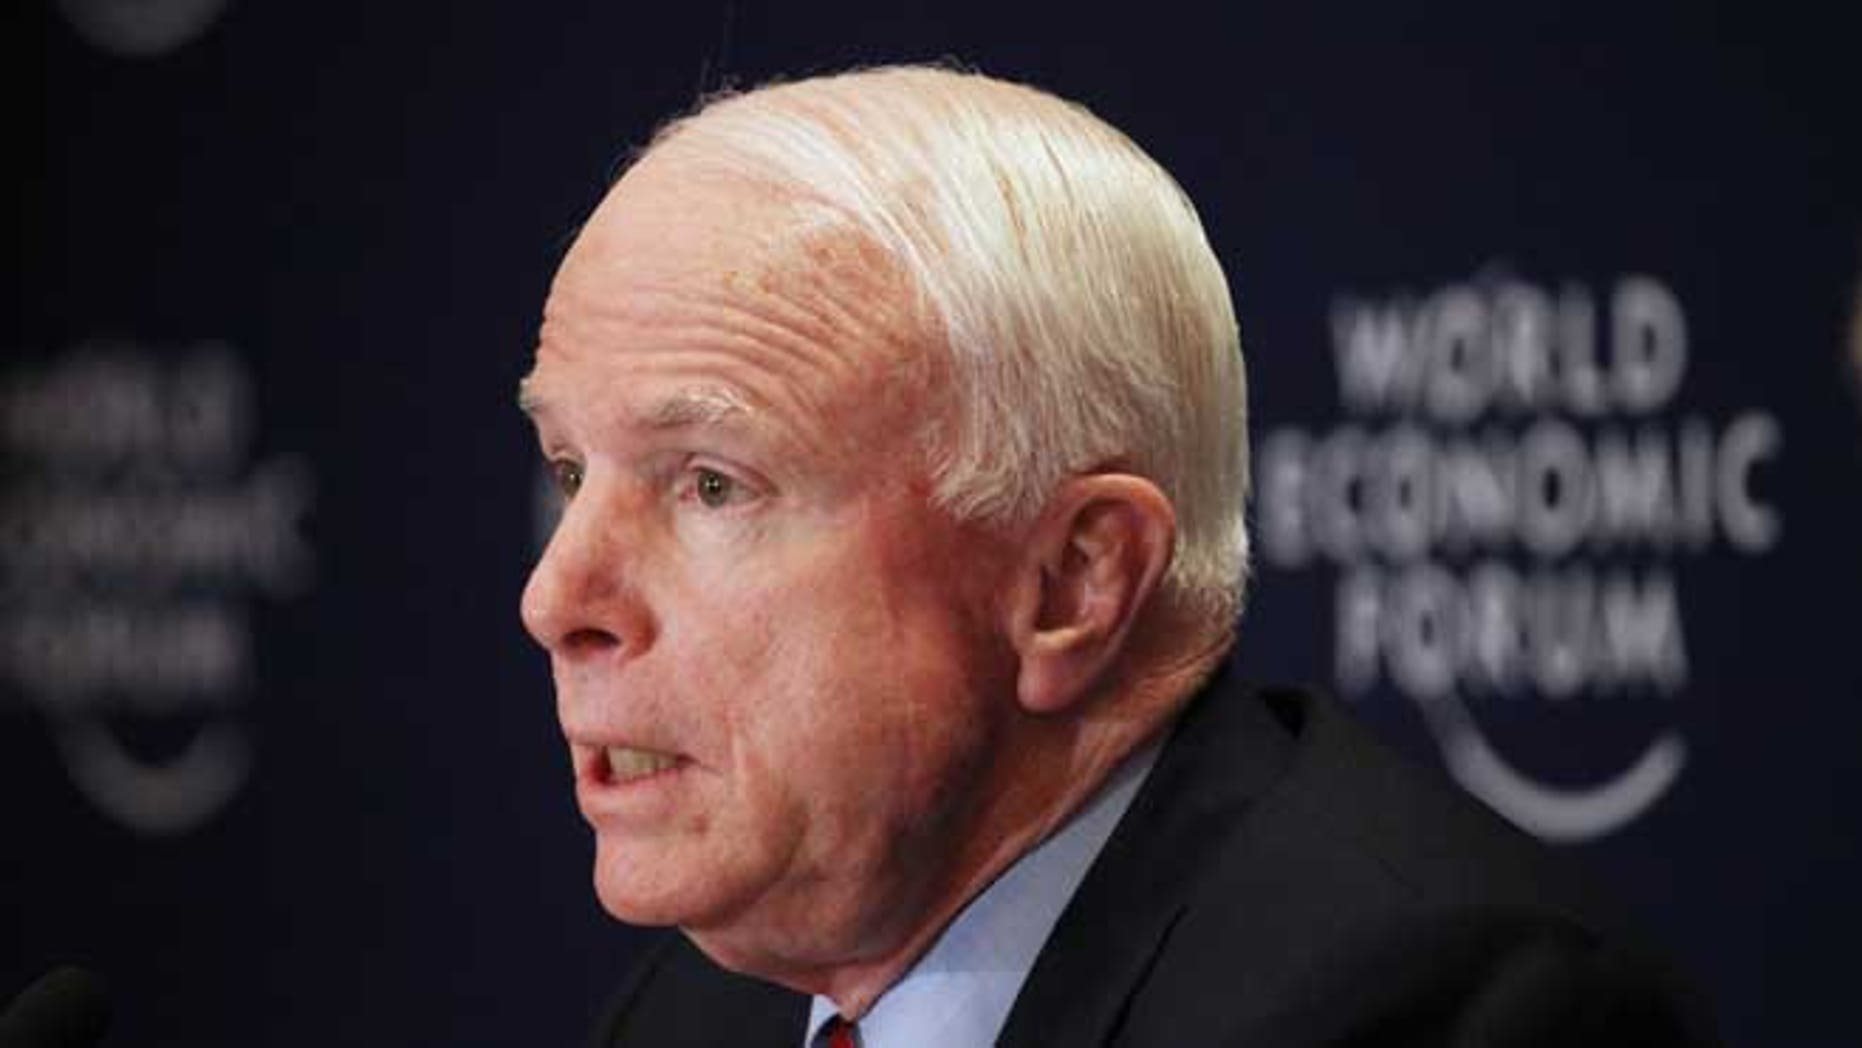 May 25, 2013. Sen. John McCain speaks at a news conference at the World Economic Forum held southeast of Amman, Jordan. McCain has quietly slipped into Syria for a meeting with Syrian rebels, spokeswoman Rachael Dean confirmed Monday, May 27, 2013.